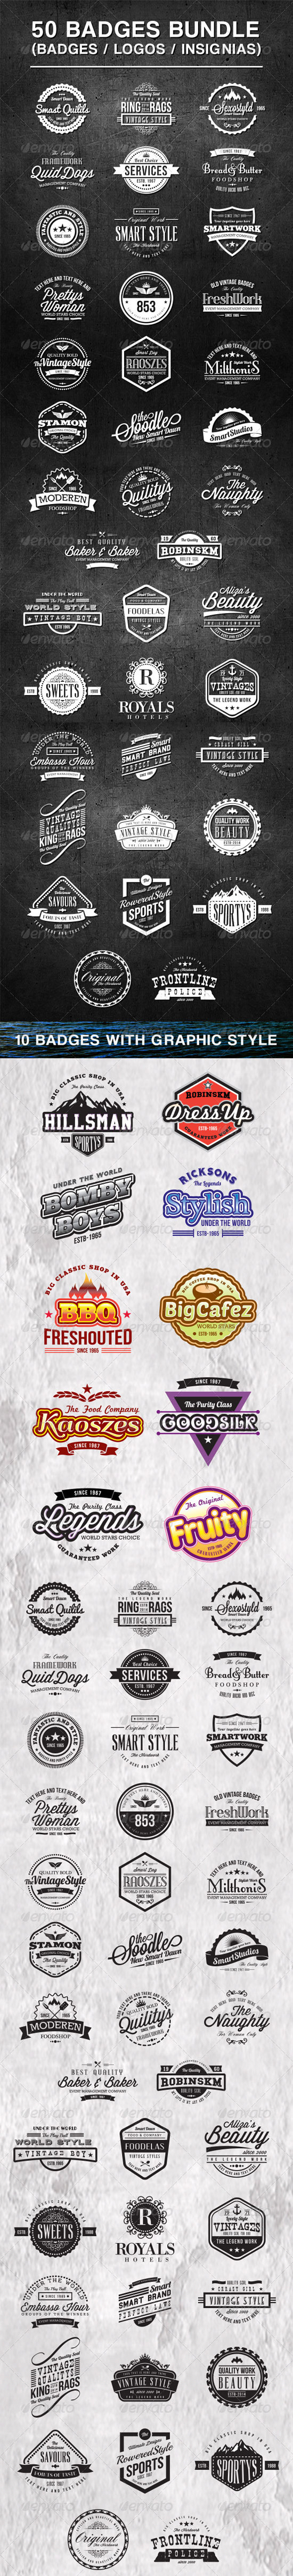 Best Badges and Logos Template